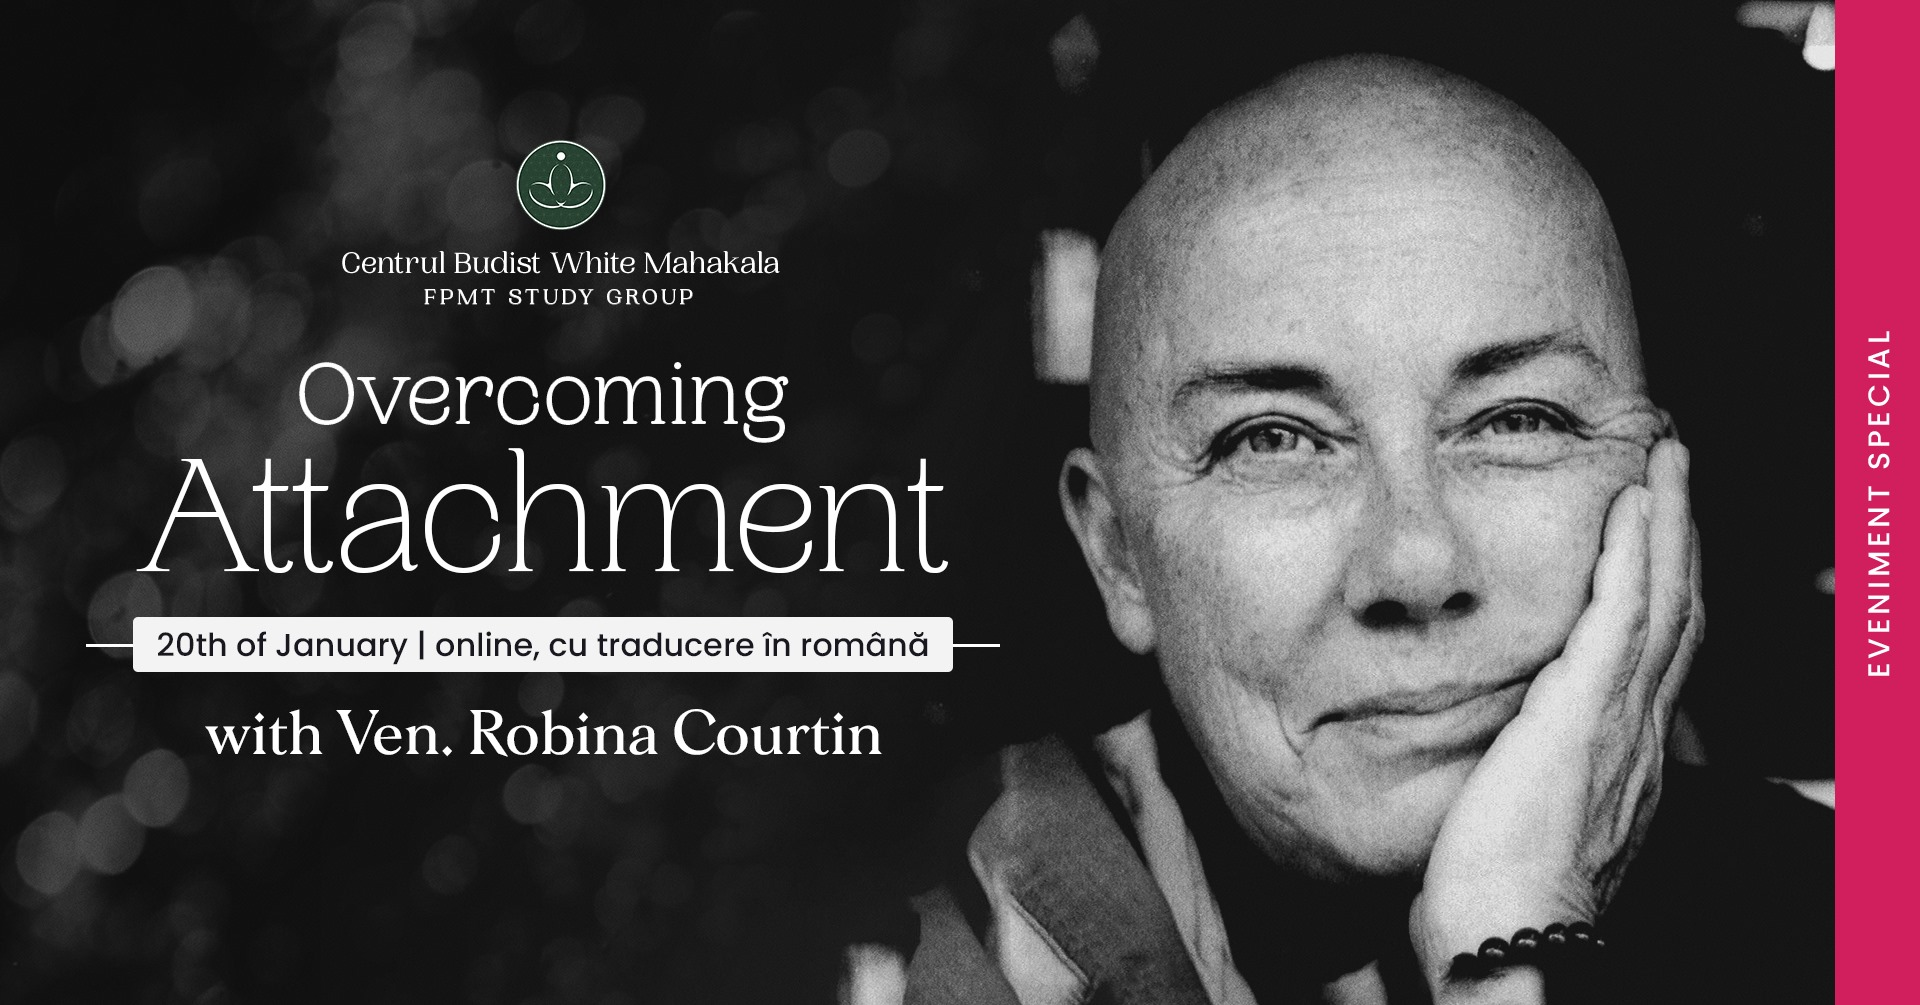 Overcoming Attachment vith Ven. Robina Courtin